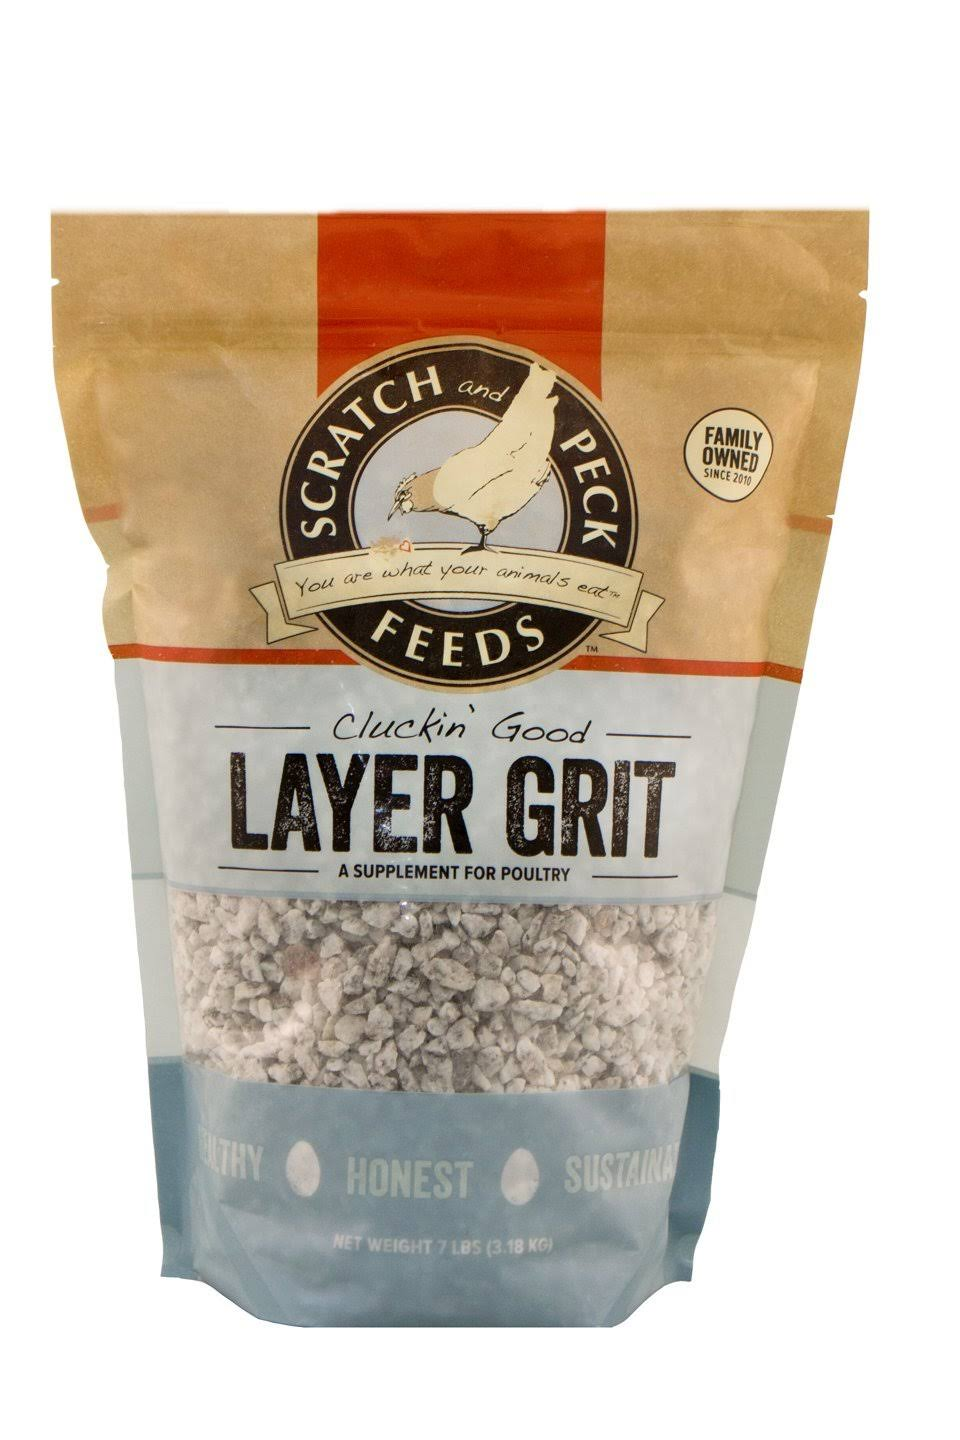 Scratch and Peck Feeds - Cluckin' Good Layer Grit Supplement for Chickens and Ducks - 7-lbs